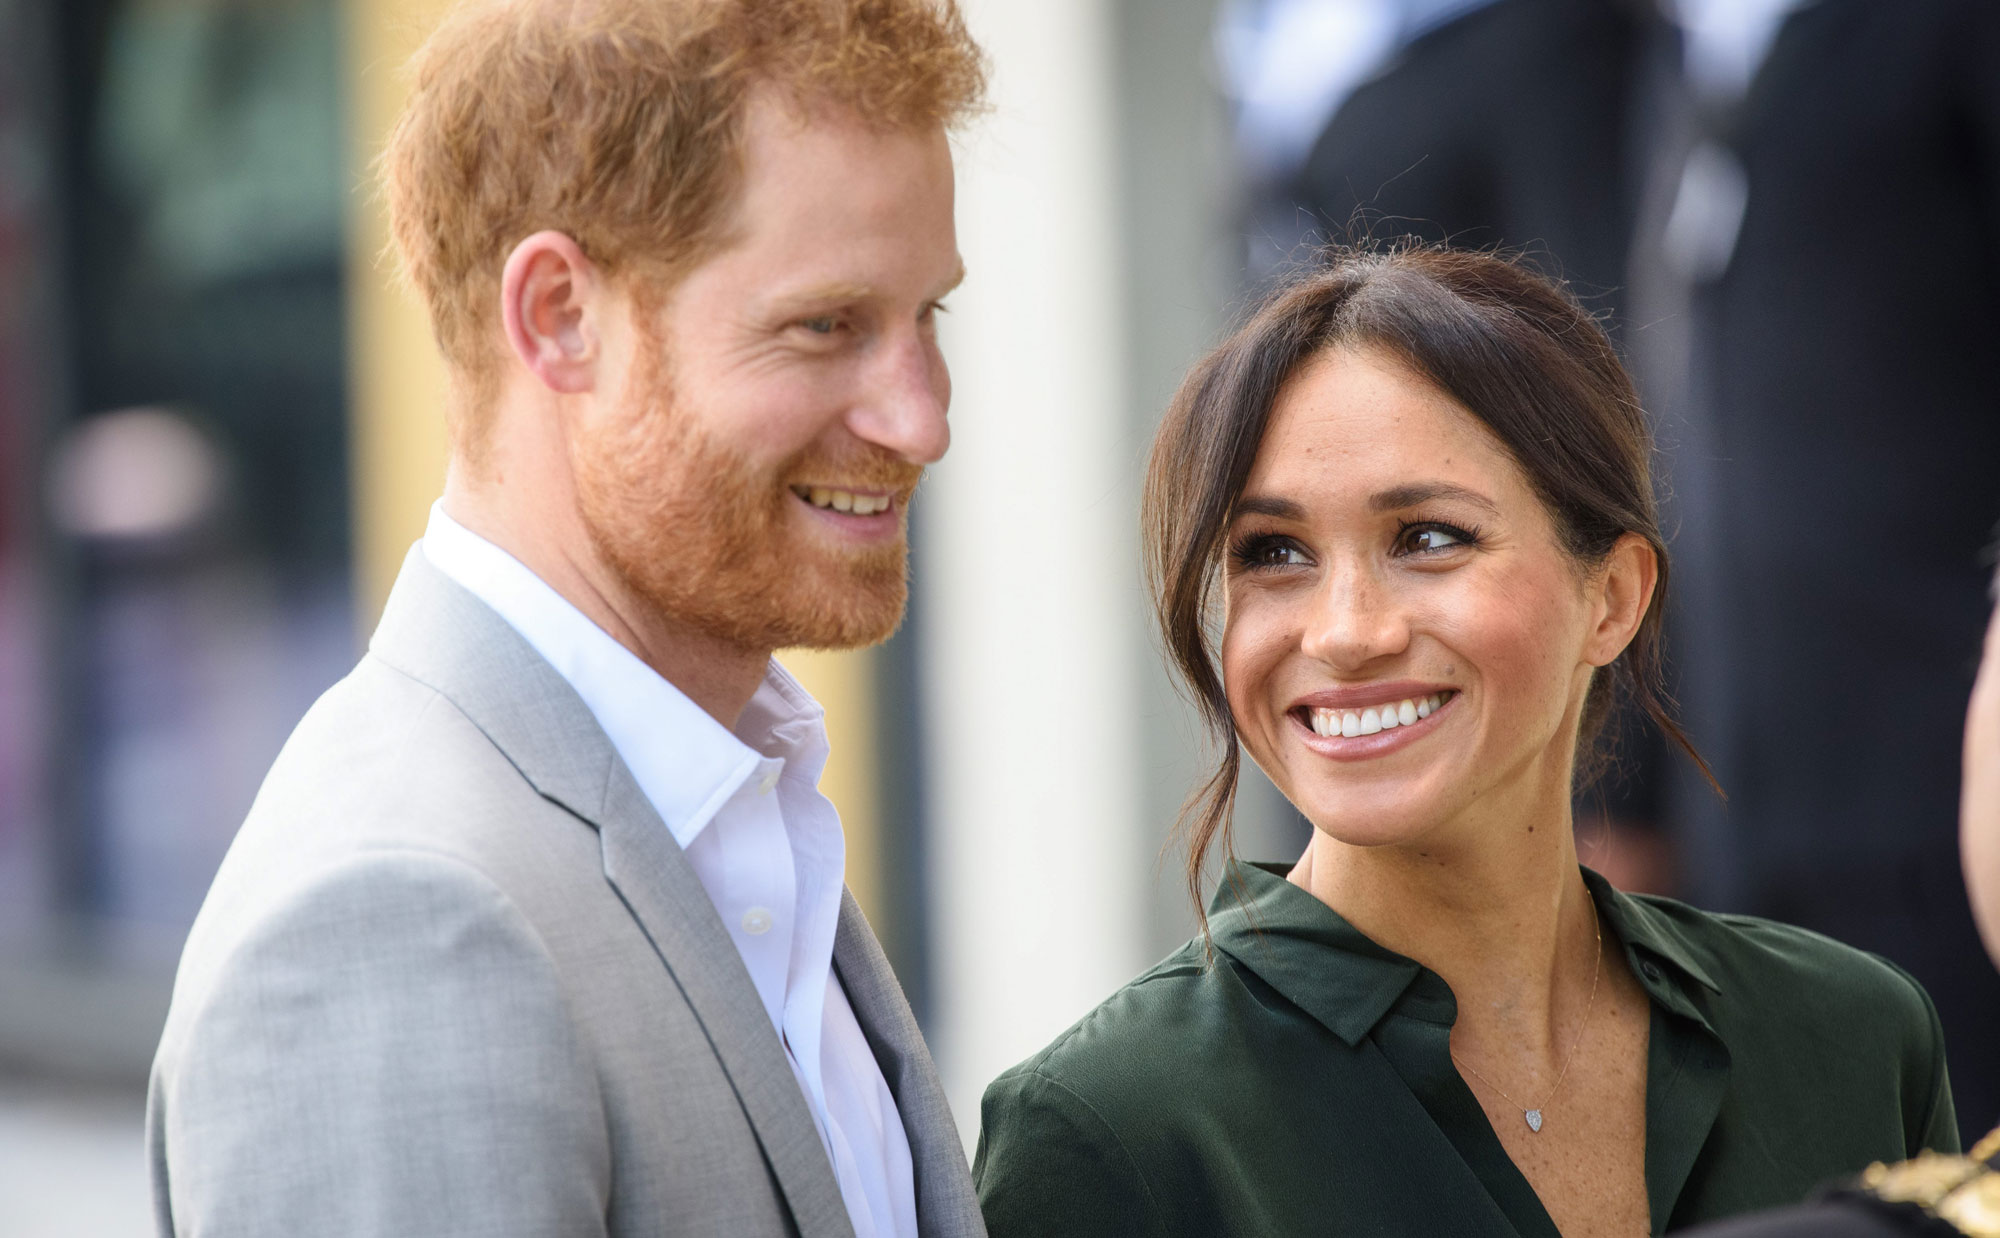 prince harry meghan markle expecting their 1st child in spring citynews toronto prince harry meghan markle expecting their 1st child in spring citynews toronto